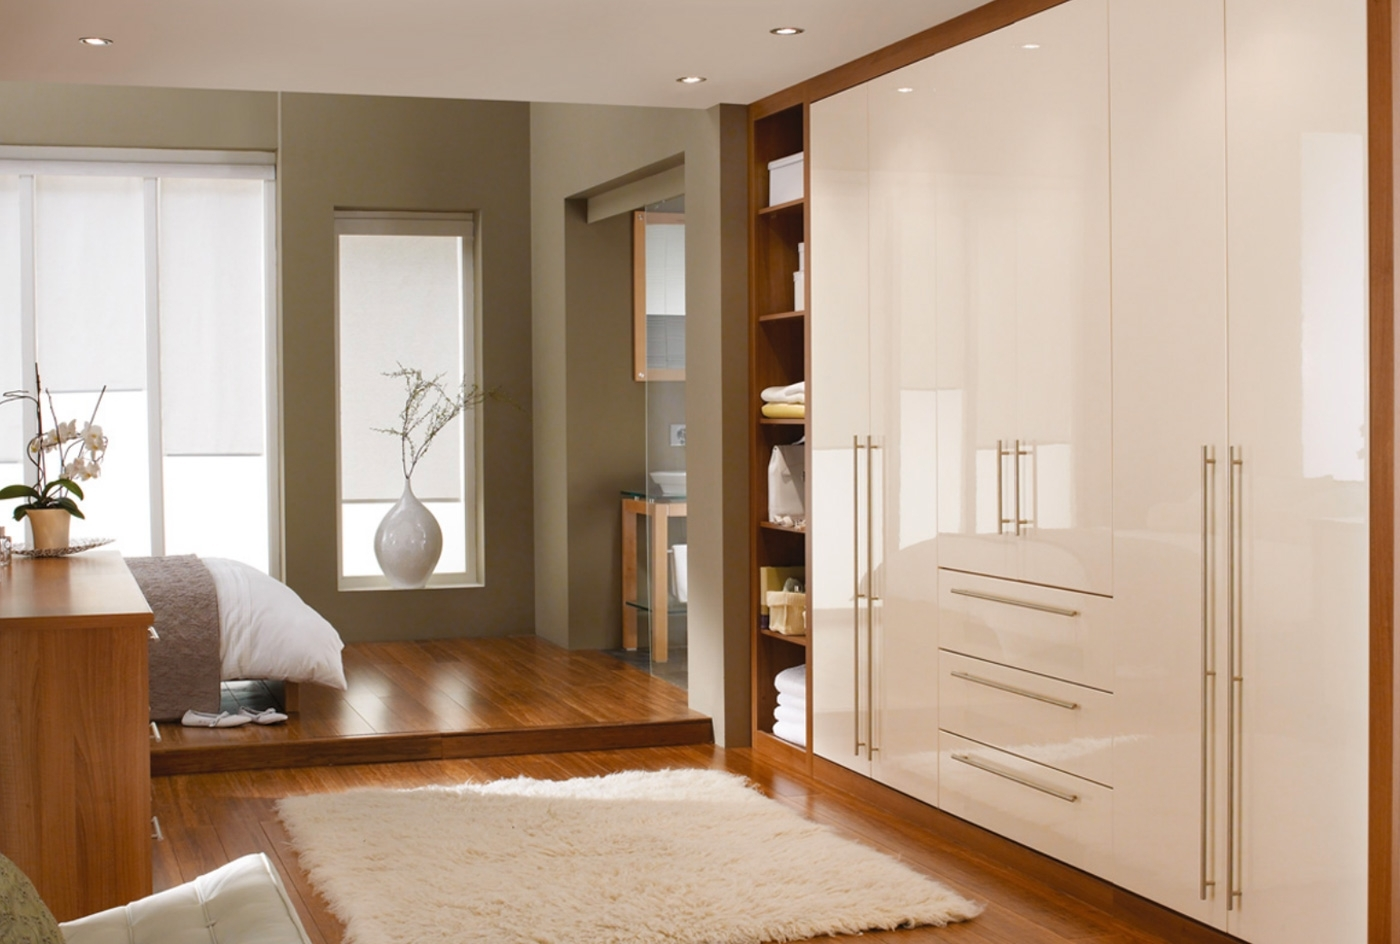 High Gloss Cosmopolitan Bedroom Furniture Range In Classic Cream Throughout Best And Newest Cream Gloss Wardrobes (View 9 of 15)